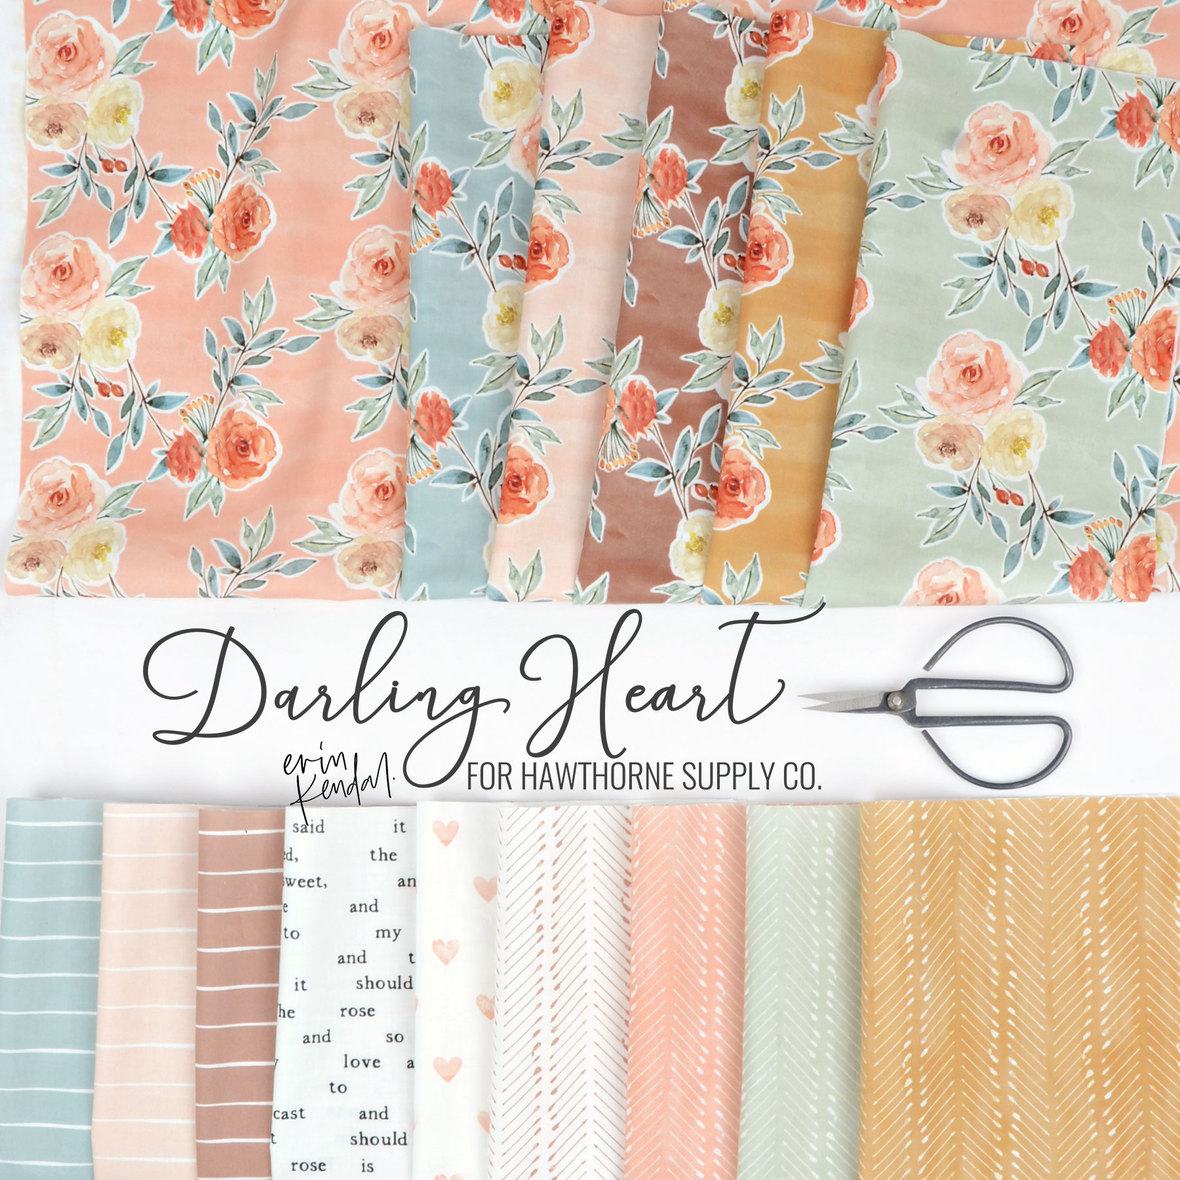 Darling-Heart-Fabric-by-Erin-Kendal-for-Hawthorne-Supply-Co